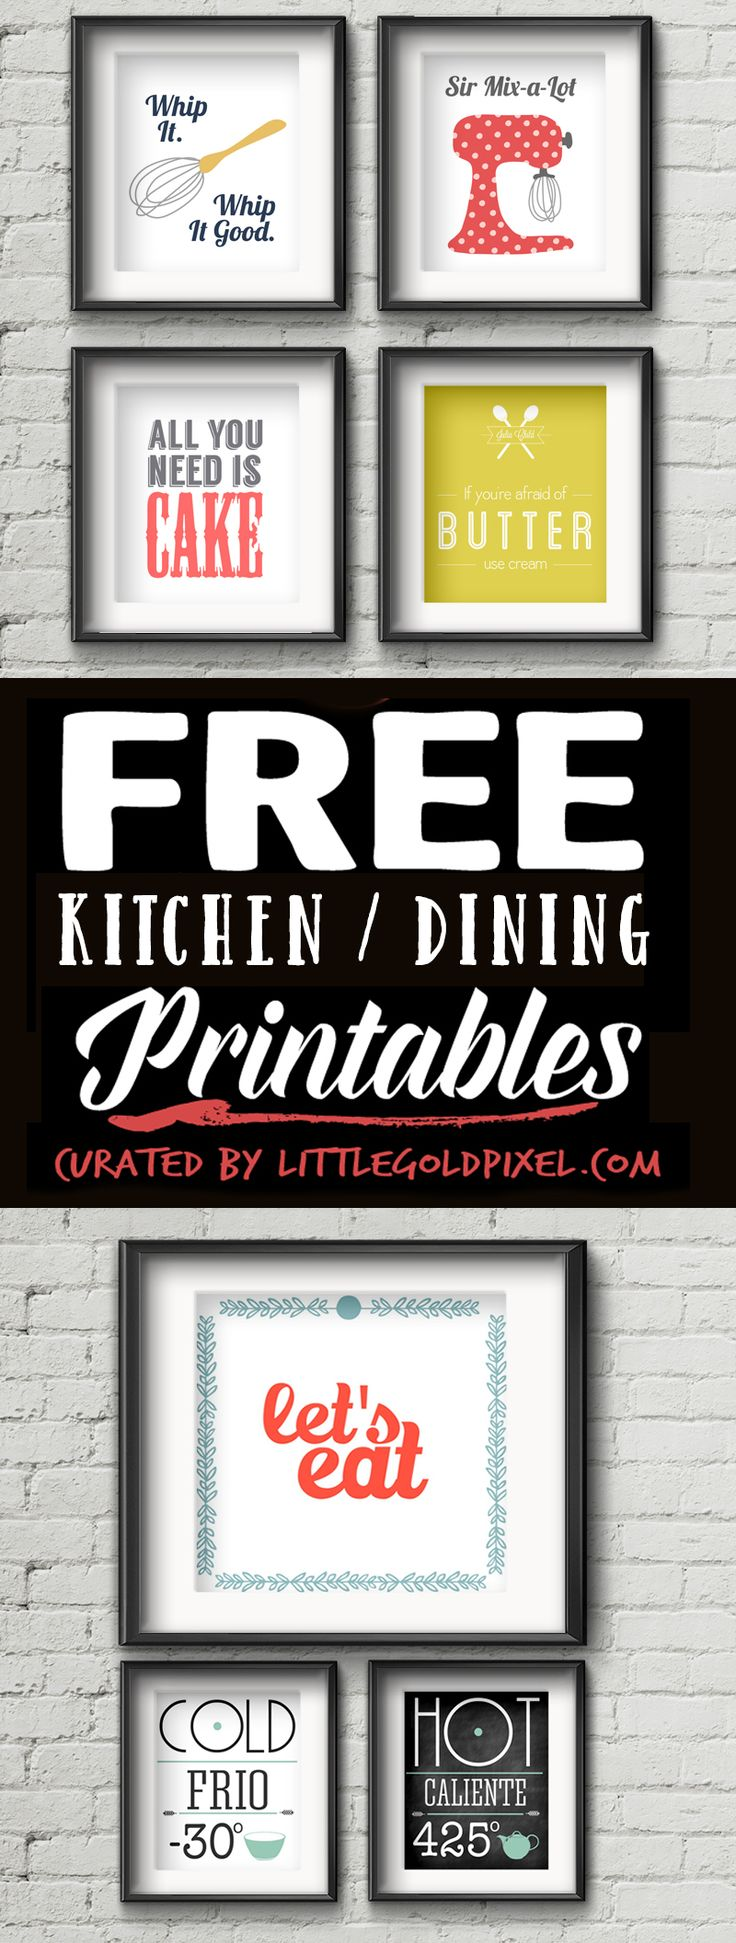 20 Kitchen Free Printables  Wall Art Roundup